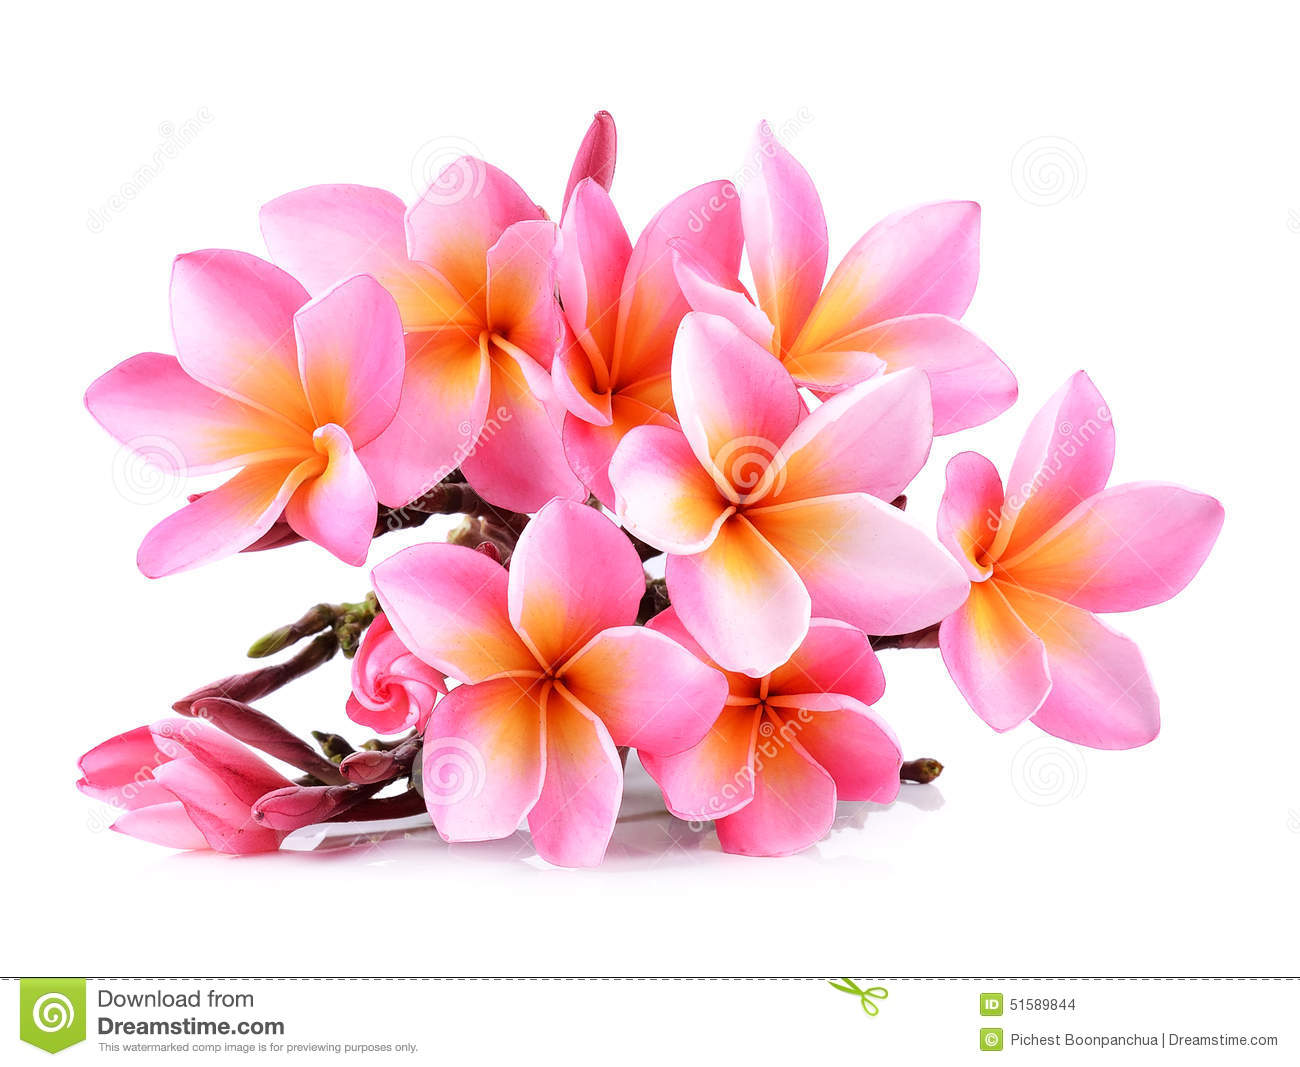 Pink plumeria flowers isolated on white background stock photo background isolated pink plumeria dhlflorist Gallery